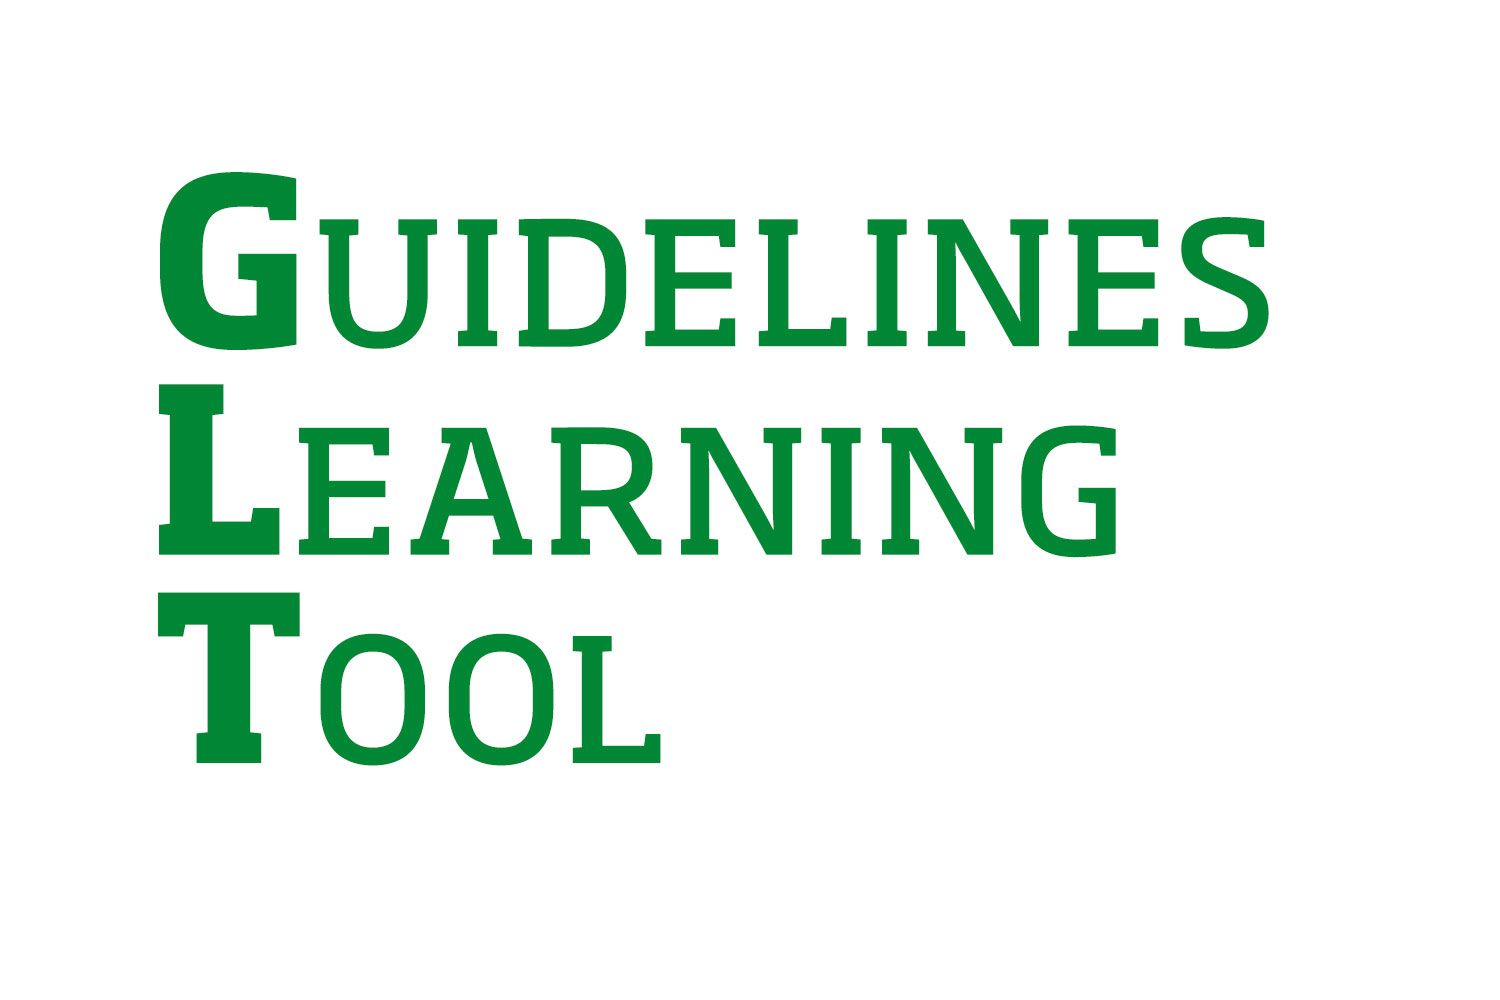 Guidelines-learning-tool-web.jpg